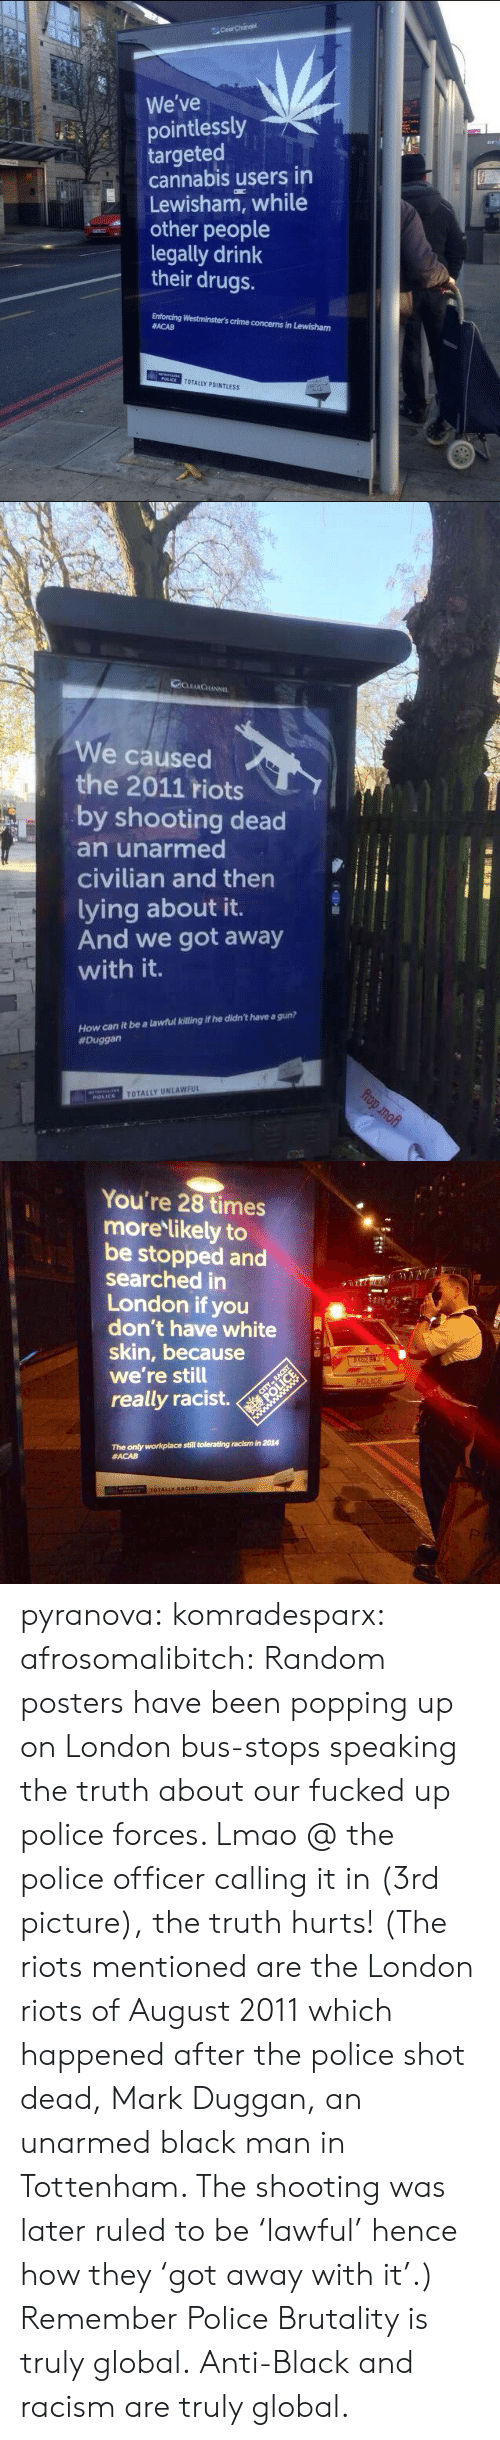 white skin: lear Channe  We've  pointlessly  targeted  cannabis users in  Lewisham, while  other people  legally drink  their drugs.  ST  Juti-  Enforcing Westminster's crime concerns in Lewisham  #ACAB  POLICE  TOTALLY POINTLESS   GLEARCHANNEL  We caused  the 2011 riots  by shooting dead  an unarmed  civilian and then  lying about it.  And we got away  with it.  How can it be a lawful killing if he didn't have a gun?  #Duggan  TOTALLY UNLAWFUL  POLICE  D   You're 28 times  more likely to  be stopped and  searched in  London if you  don't have white  skin, because  we're still  BX62 B  CITY-RACIST  POLICE  really racist.  ww  POLICE  ww  The only workplace still tolerating racism in 2014  #ACAB  TOTALLY RACIST pyranova:  komradesparx:  afrosomalibitch:  Random posters have been popping up on London bus-stops speaking the truth about our fucked up police forces. Lmao @ the police officer calling it in (3rd picture), the truth hurts! (The riots mentioned are the London riots of August 2011 which happened after the police shot dead, Mark Duggan, an unarmed black man in Tottenham. The shooting was later ruled to be 'lawful' hence how they 'got away with it'.)  Remember Police Brutality is truly global.  Anti-Black and racism are truly global.